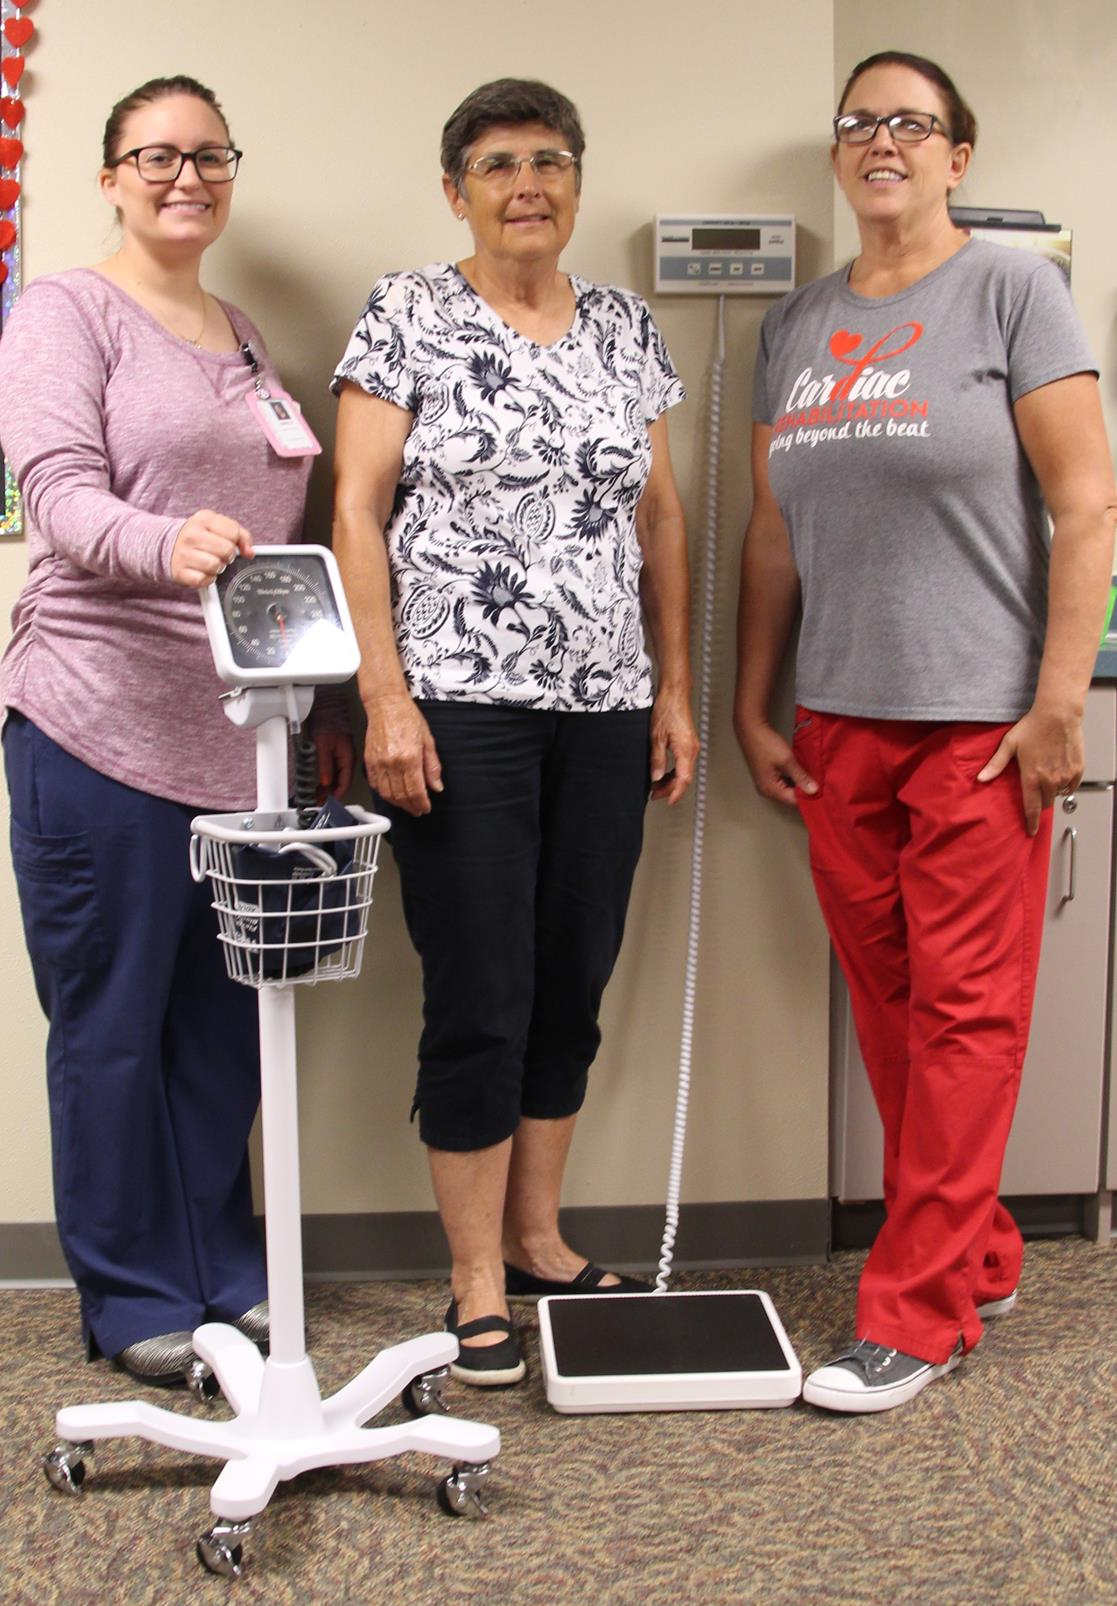 Picture with new cardiac rehab equipment made possible by the Johnson family's donation are Emily Weets, RN, Donna Johnson, and Trish Jensen, RN.